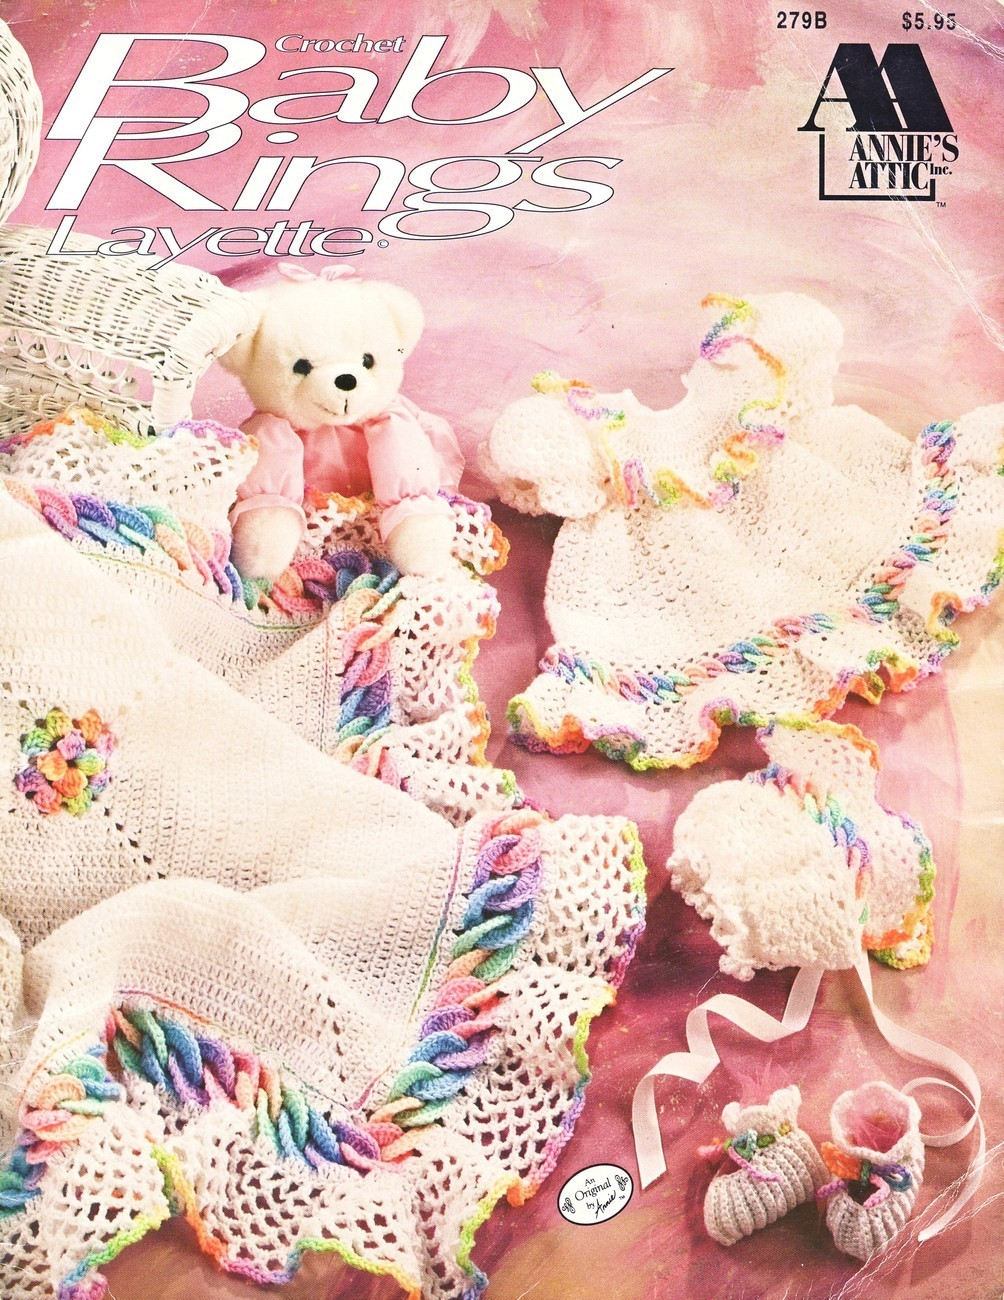 Baby Rings Layette Crochet Patterns Annies Attic Boy Girl Afghan Dress ...